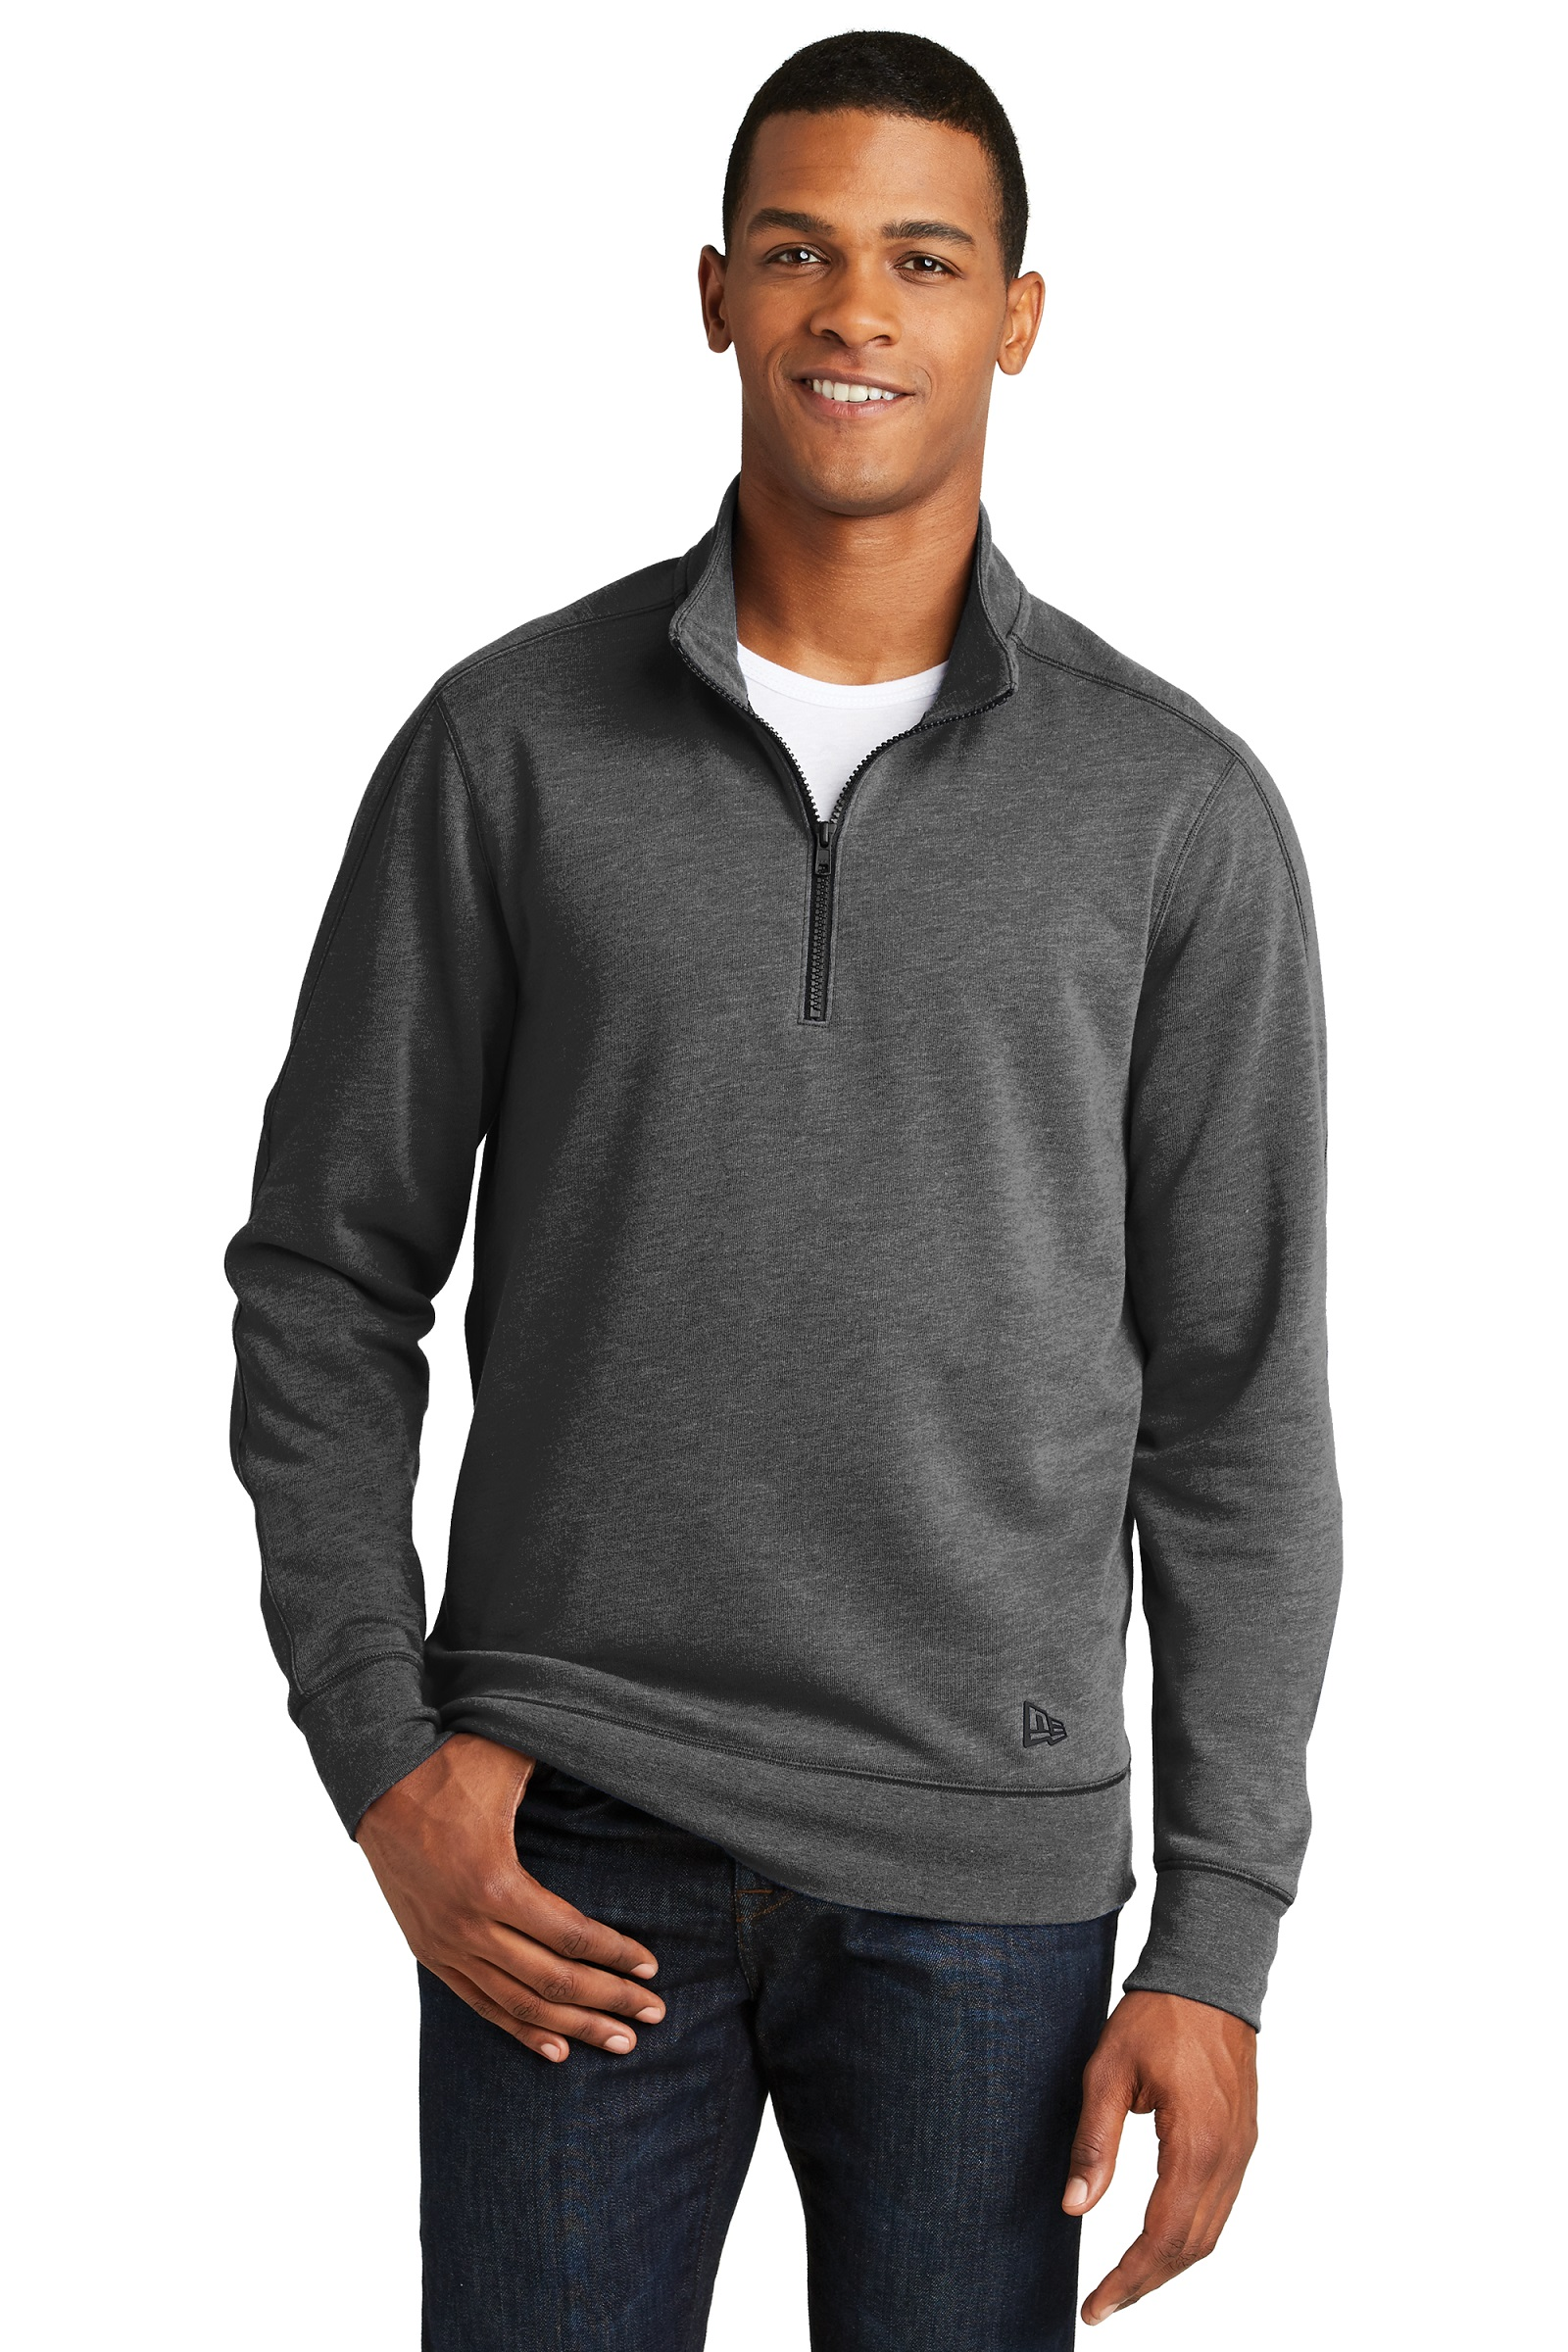 New Era Embroidered Men's 1/4-Zip Pullover Tri-Blend Sweatshirt